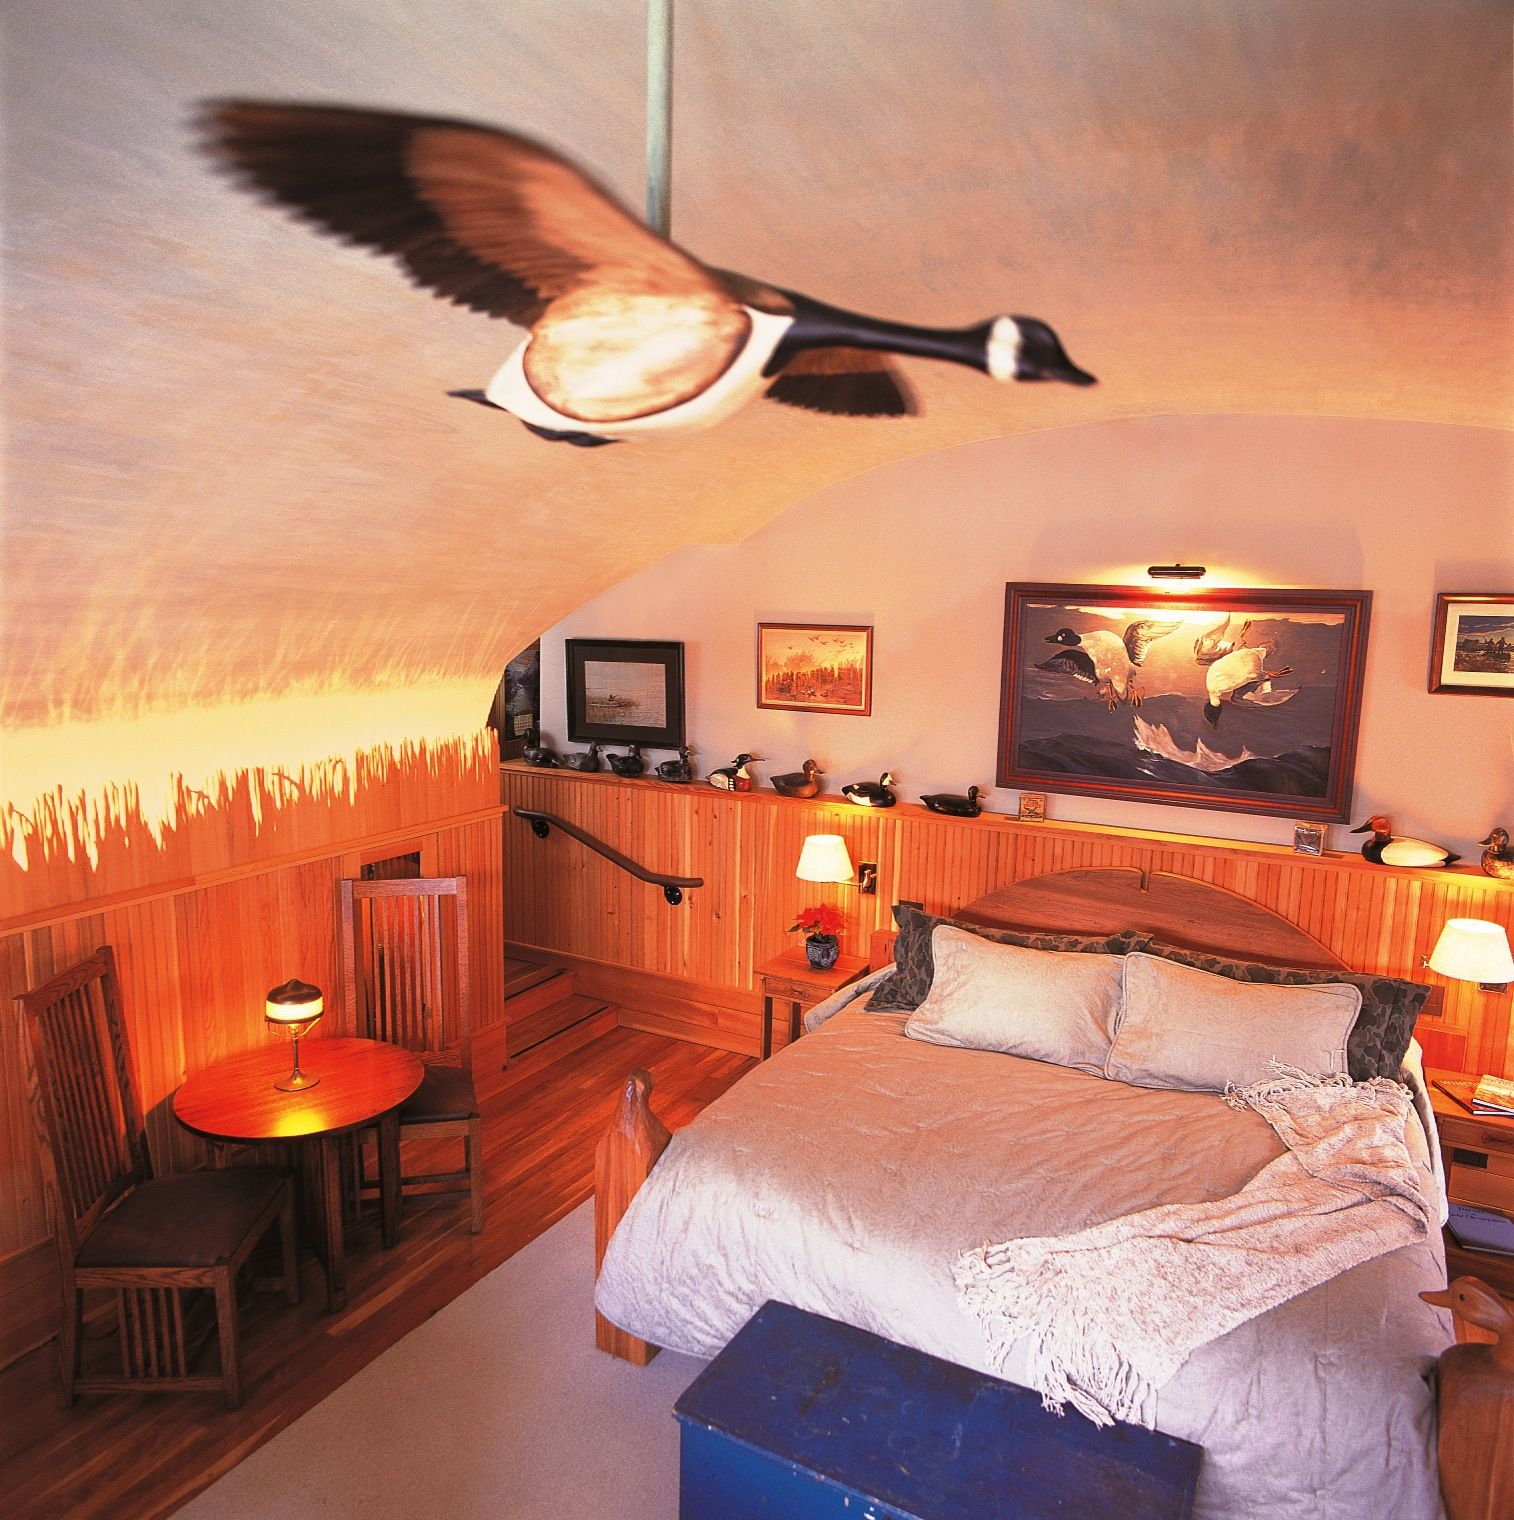 Ducks Unlimited Home Decor: The Mallard Room, Complete With Duck Blinds And Calls